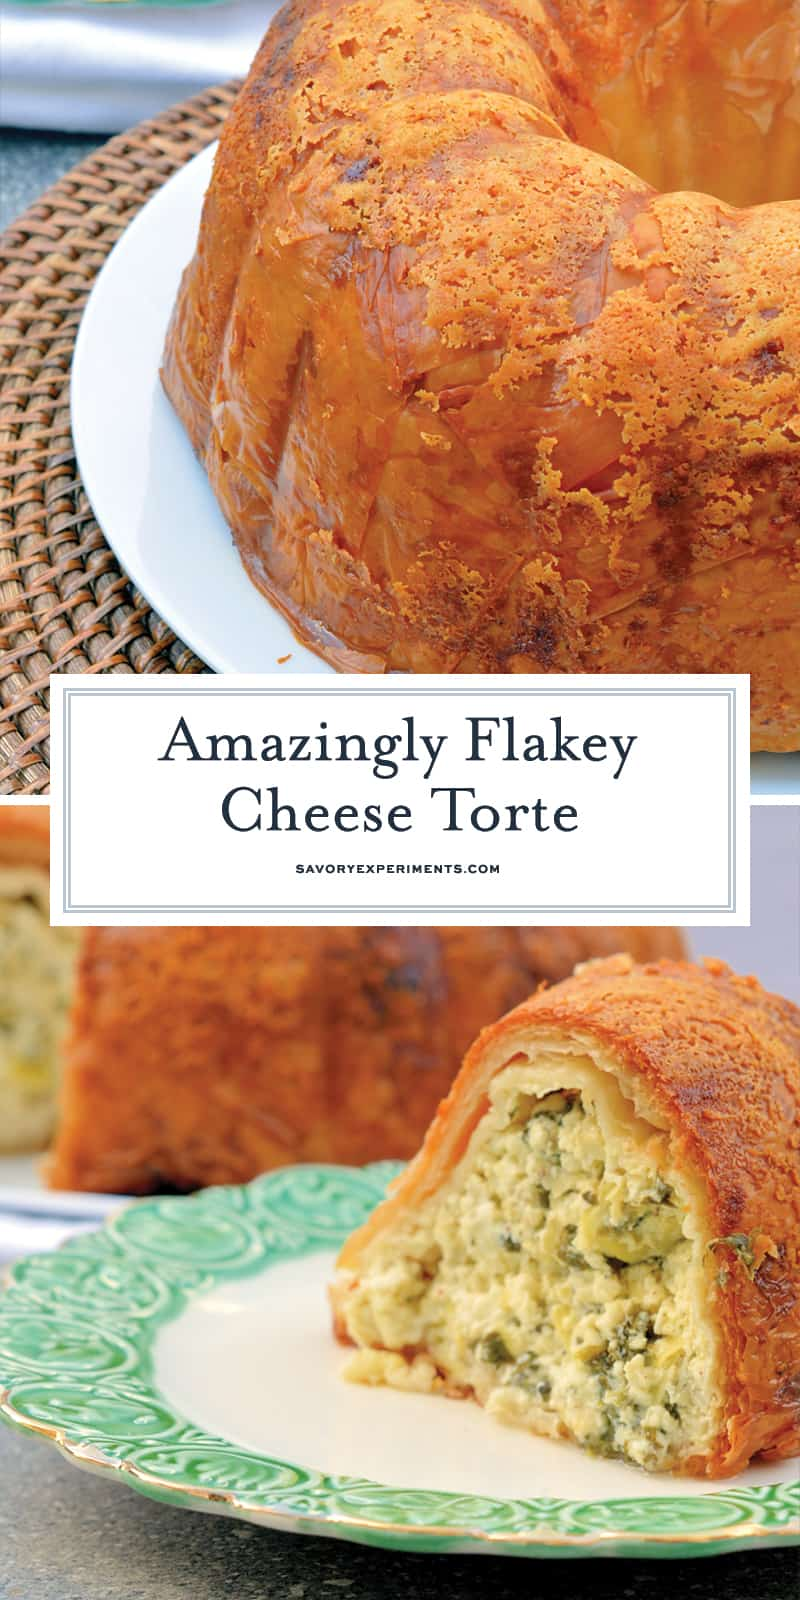 This Cheese Torte combines 3 types of cheese with spinach, artichoke and seasoning in crispy layers of buttery Phyllo dough. The ultimate appetizer, side dish or brunch dish! #cheesetorte #spinachandartichoke www.savoryexperiments.com